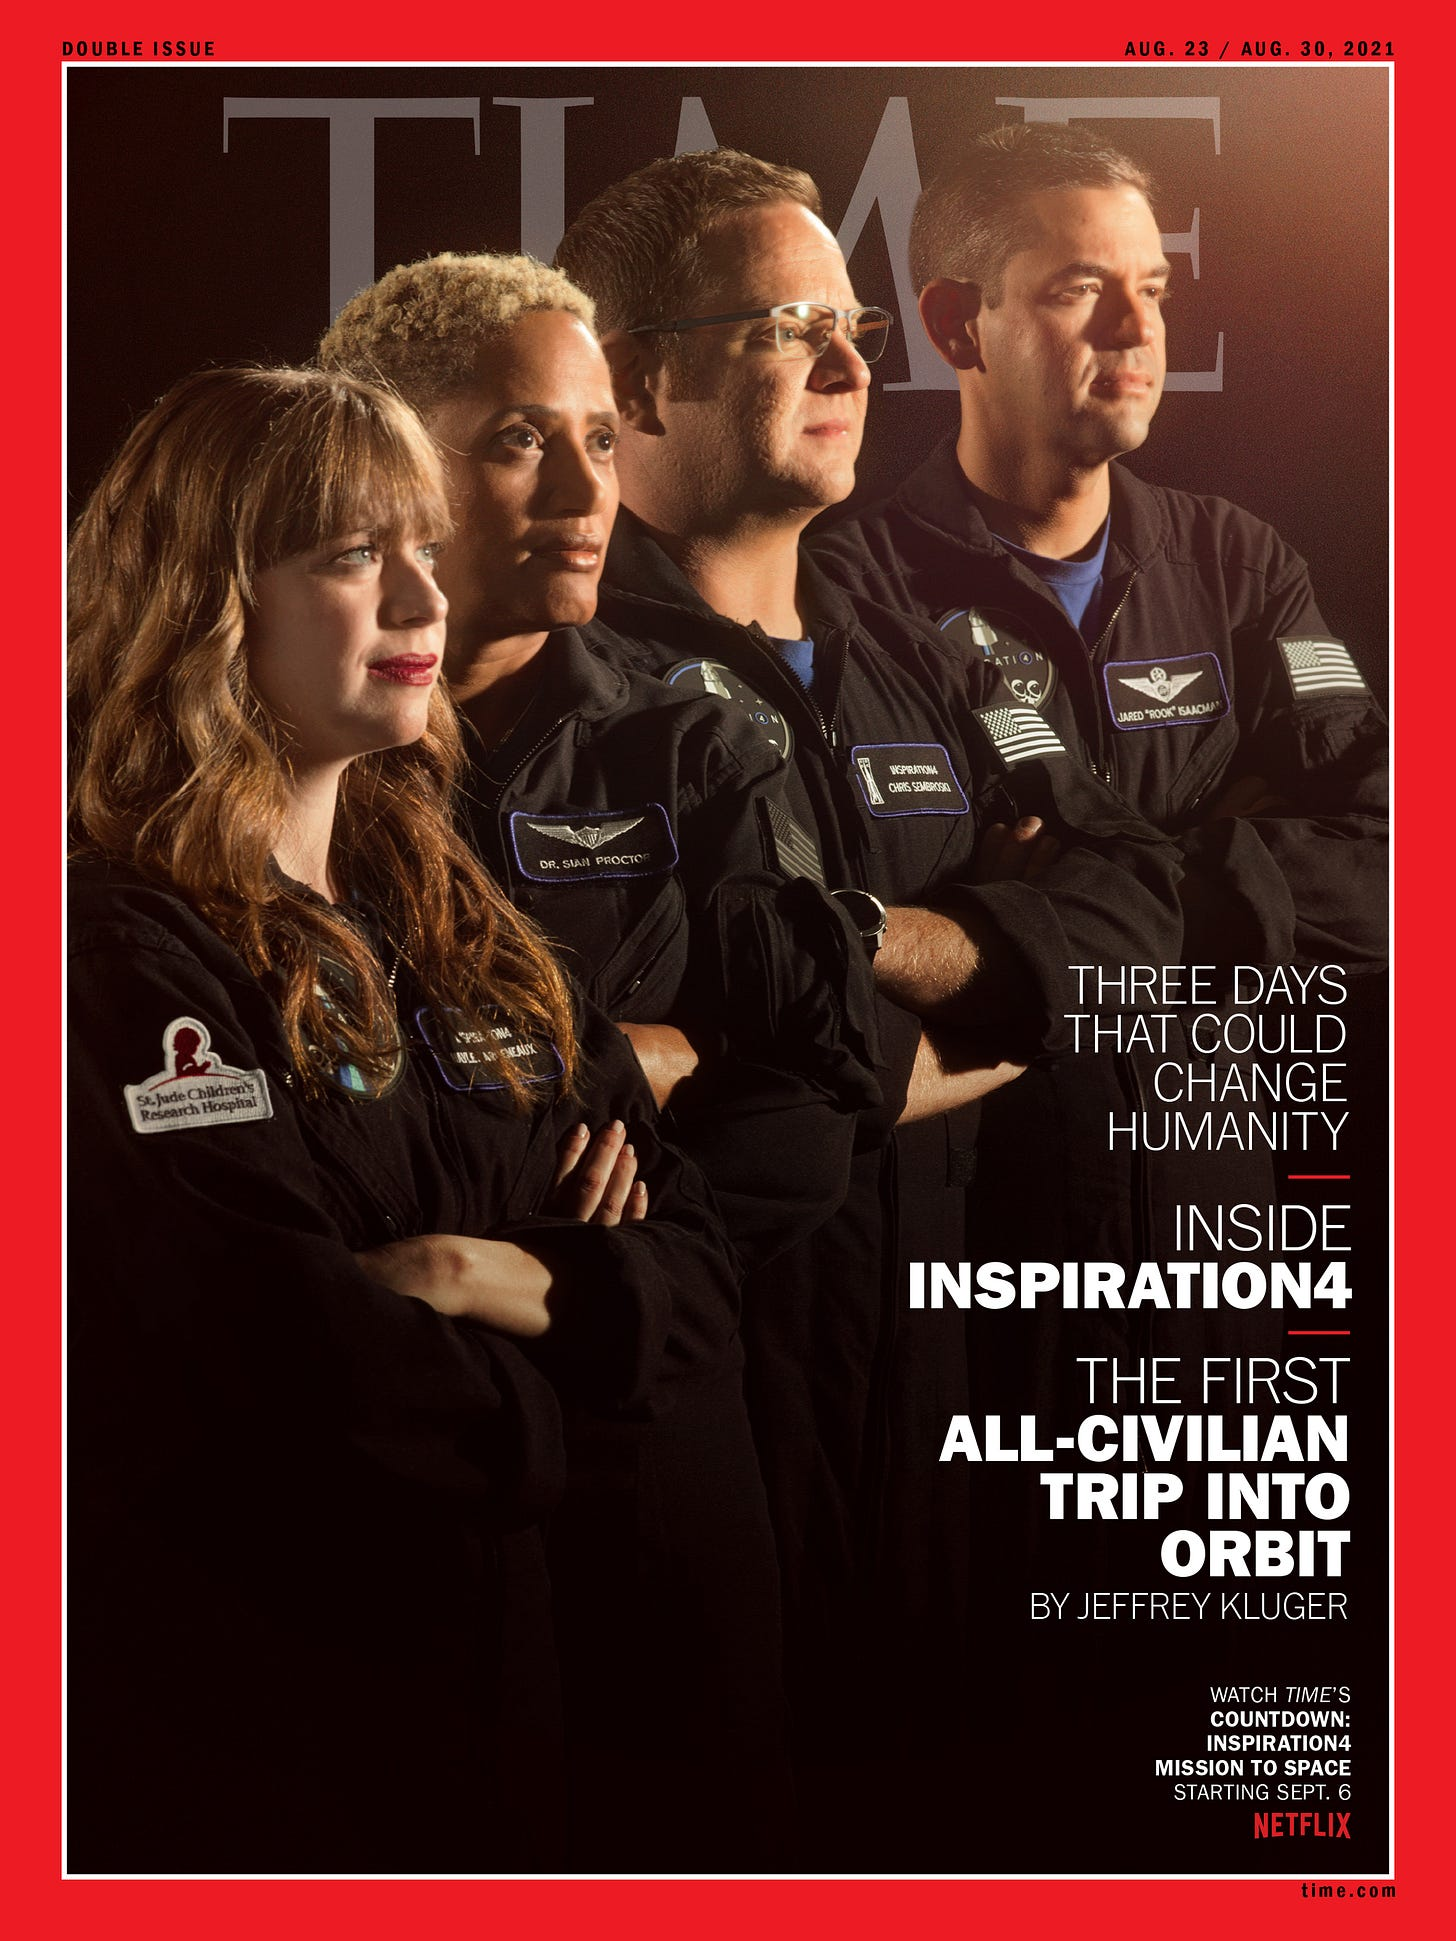 Watch Live: Inspiration4 Crew Launches to Space   TIME